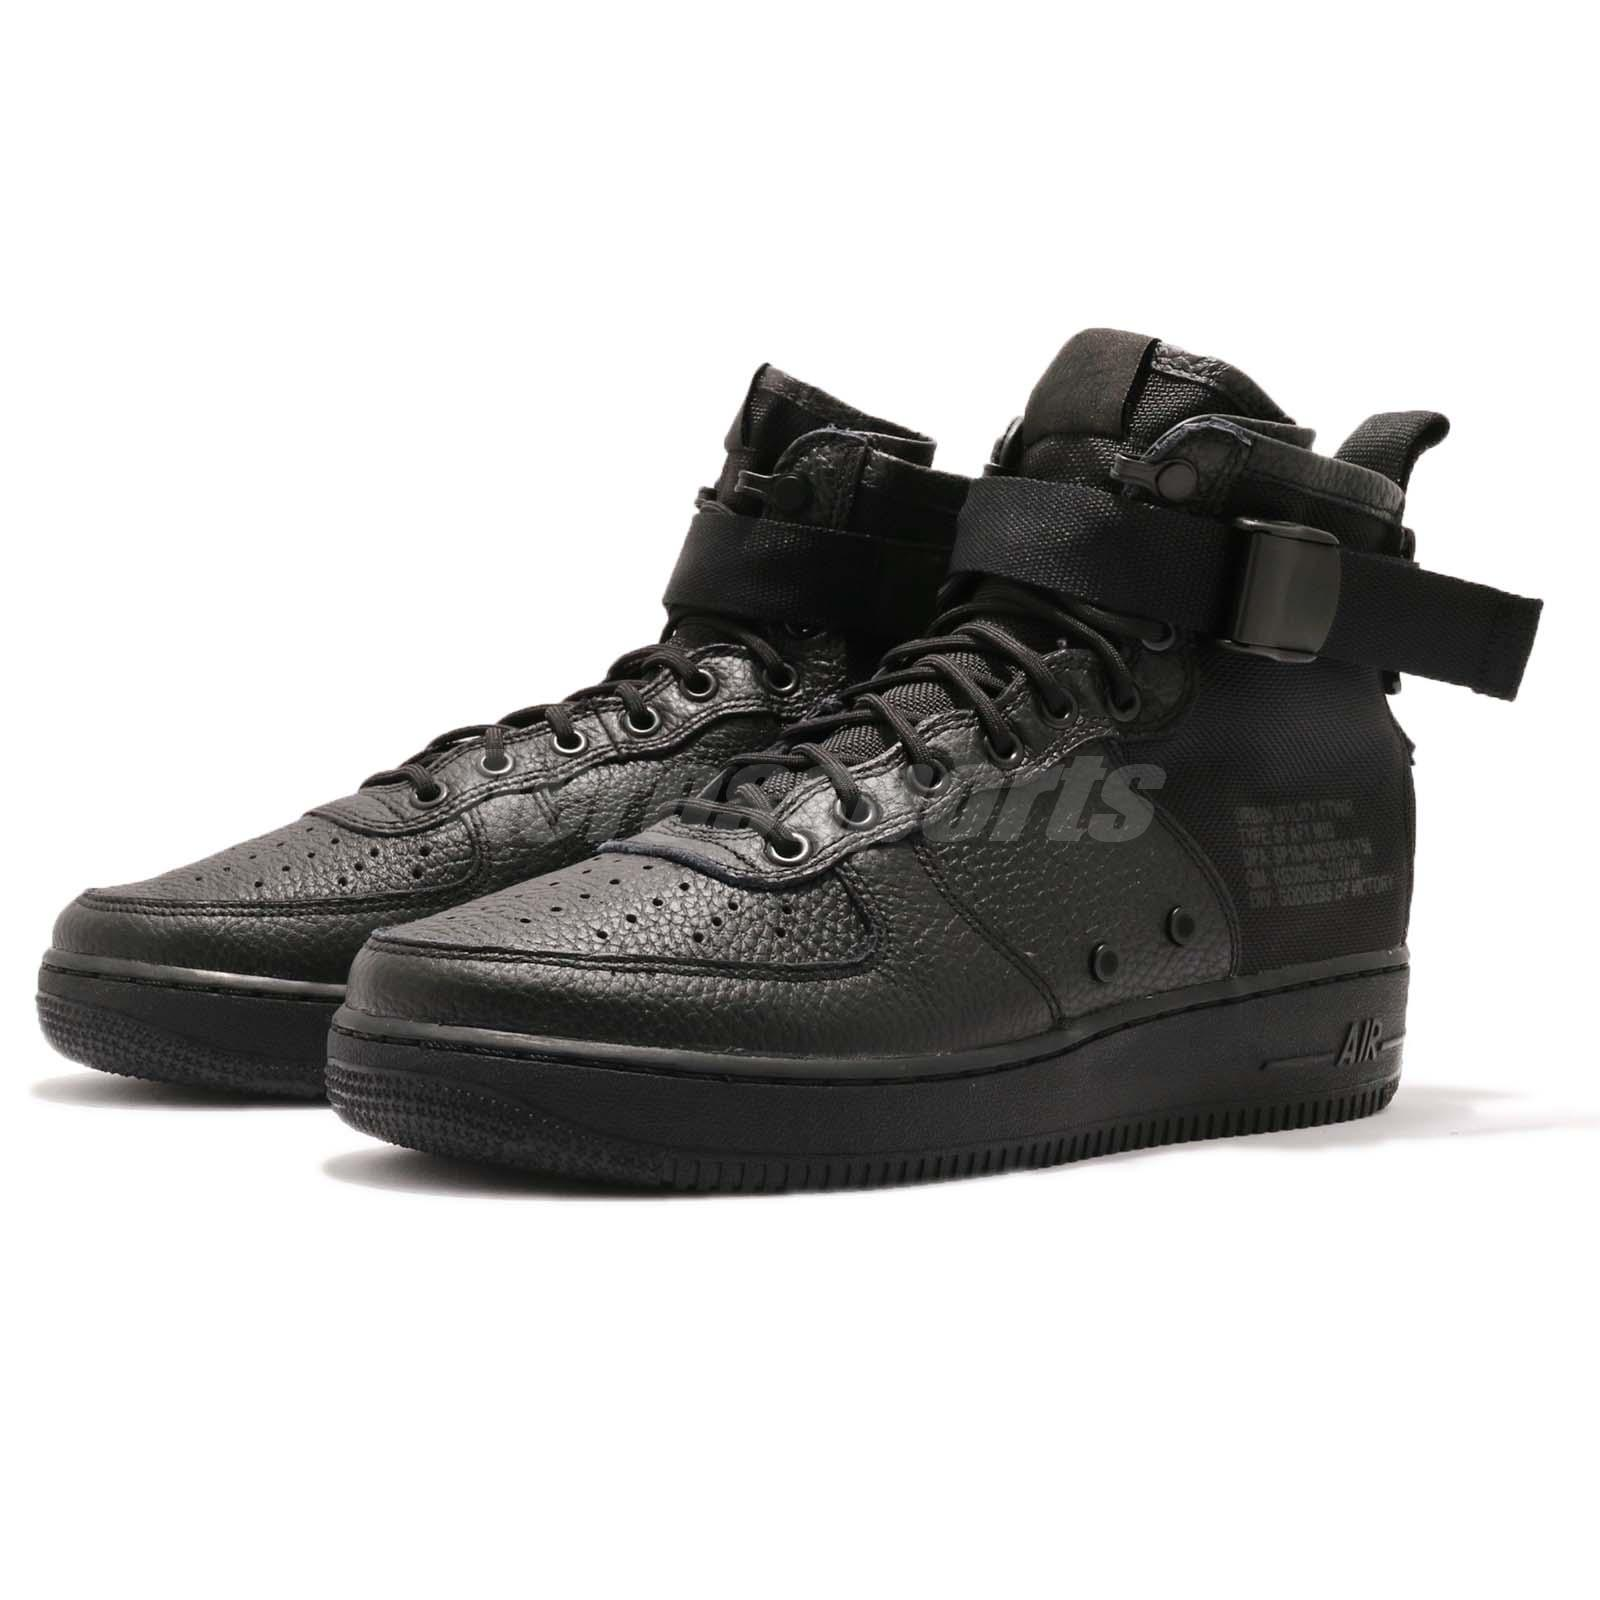 best authentic 50ee1 e1f11 Nike SF AF1 Mid Triple Black Men Lifestyle Casual Shoes Sneakers ...